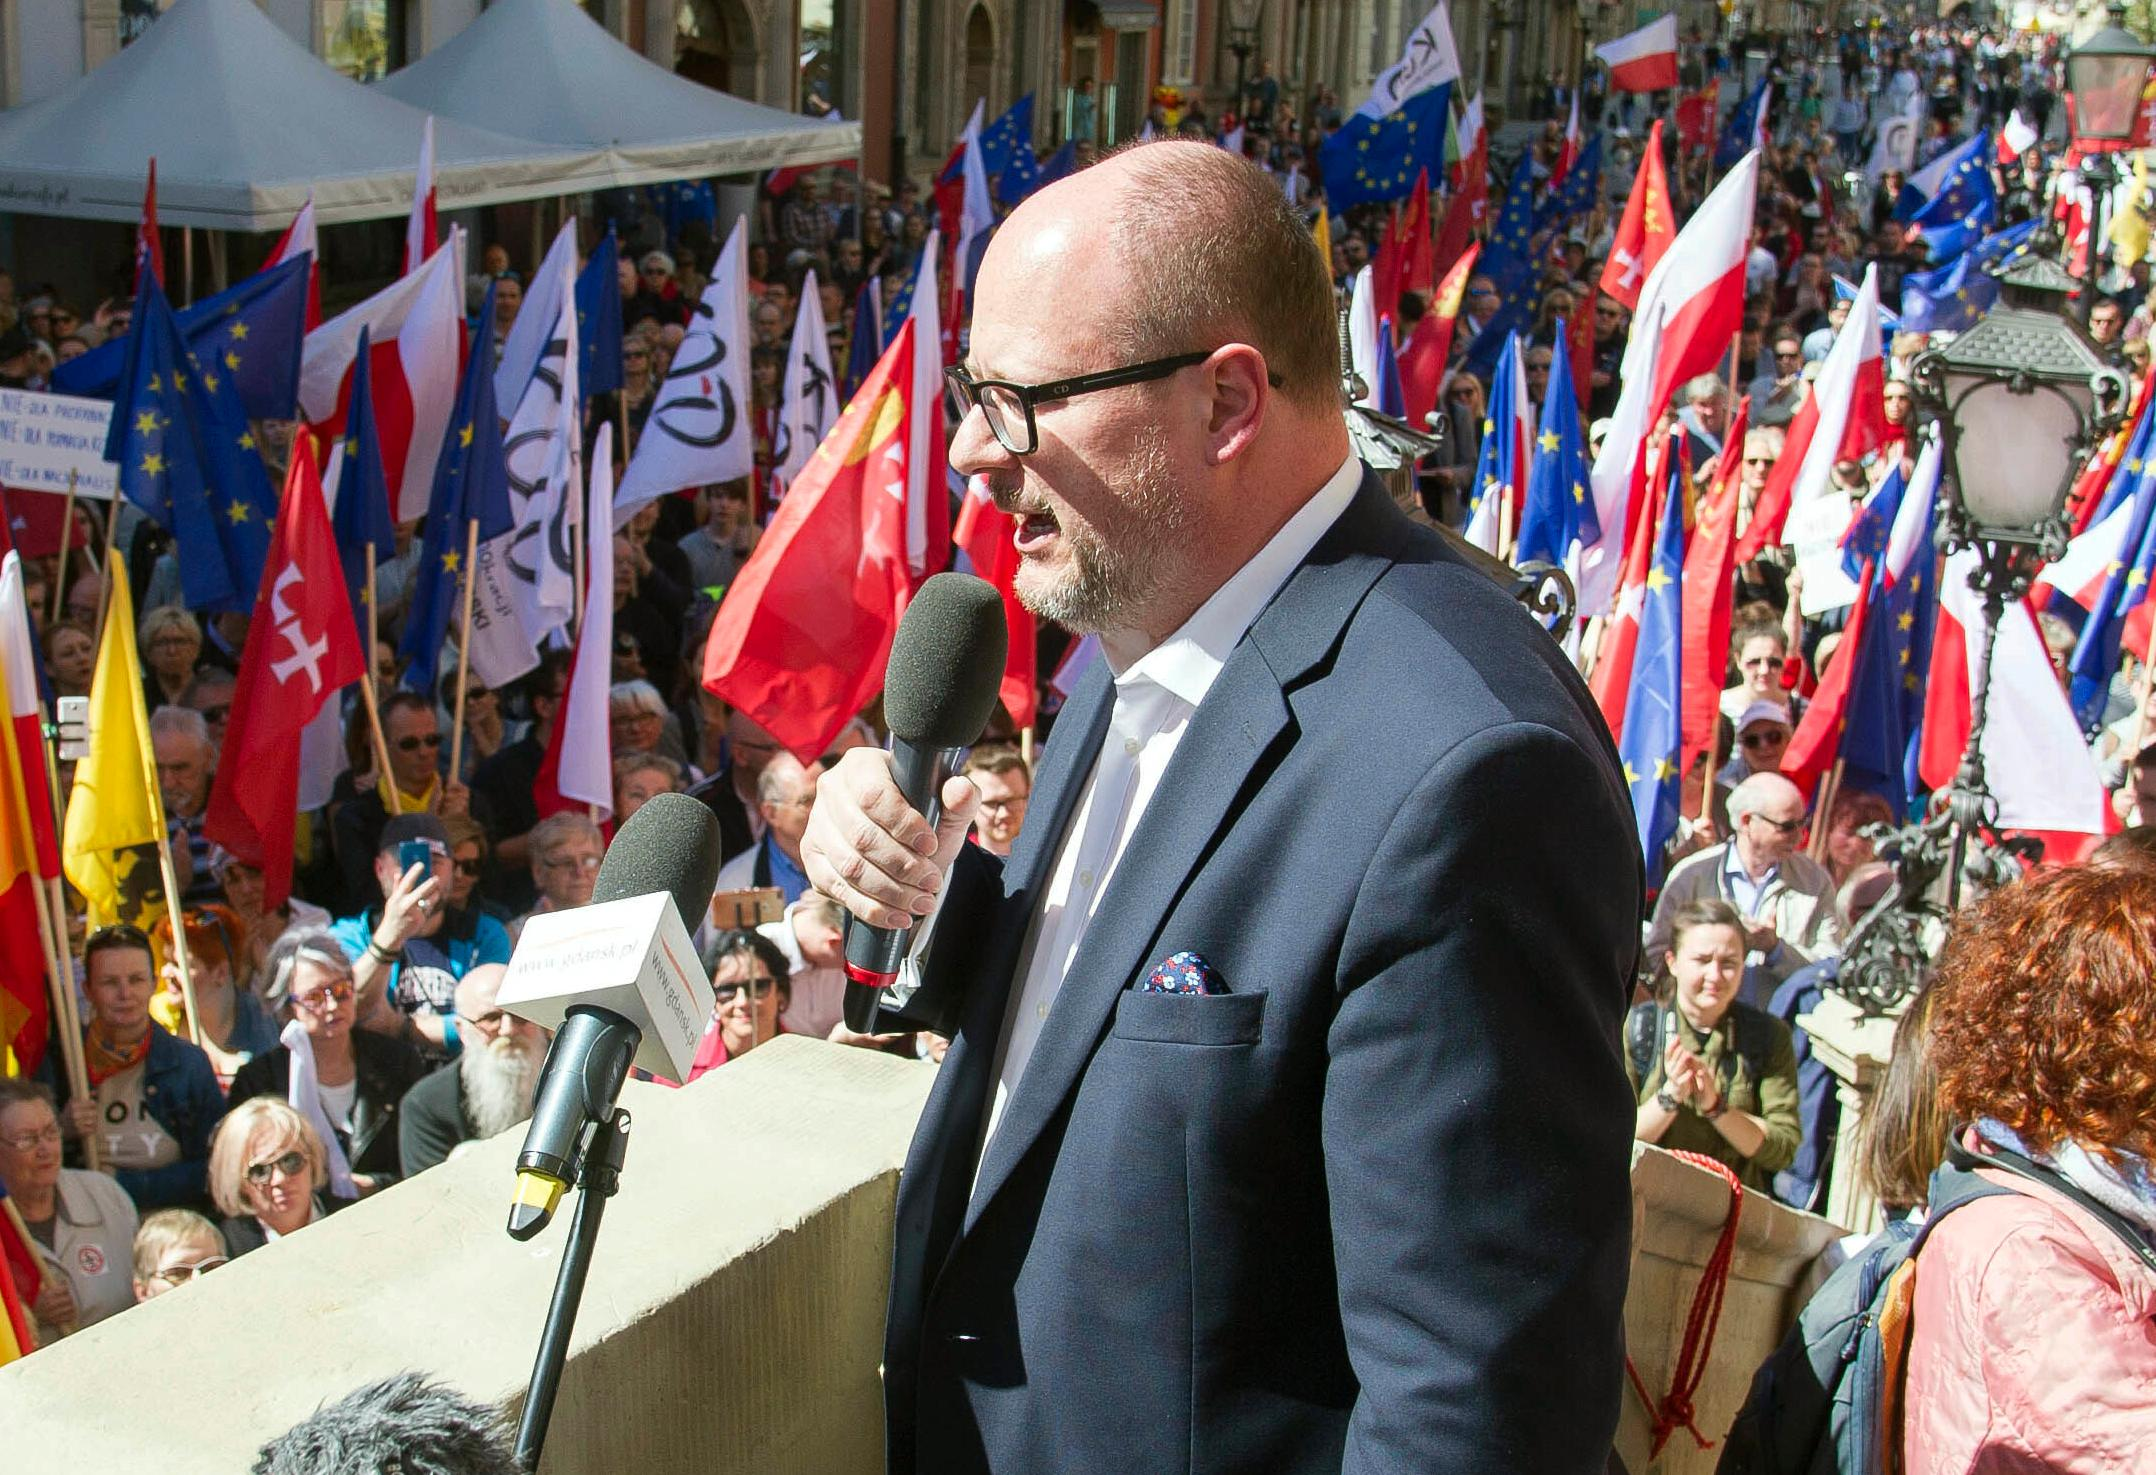 In this Saturday, April 21, 2018 file photo, the mayor of Gdansk, Pawel Adamowicz addresses a rally organized in protest against a recent gathering by far-right groups in this Baltic coast city, in Gdansk, Poland. [File photo: AP /Wojciech Strozyk]